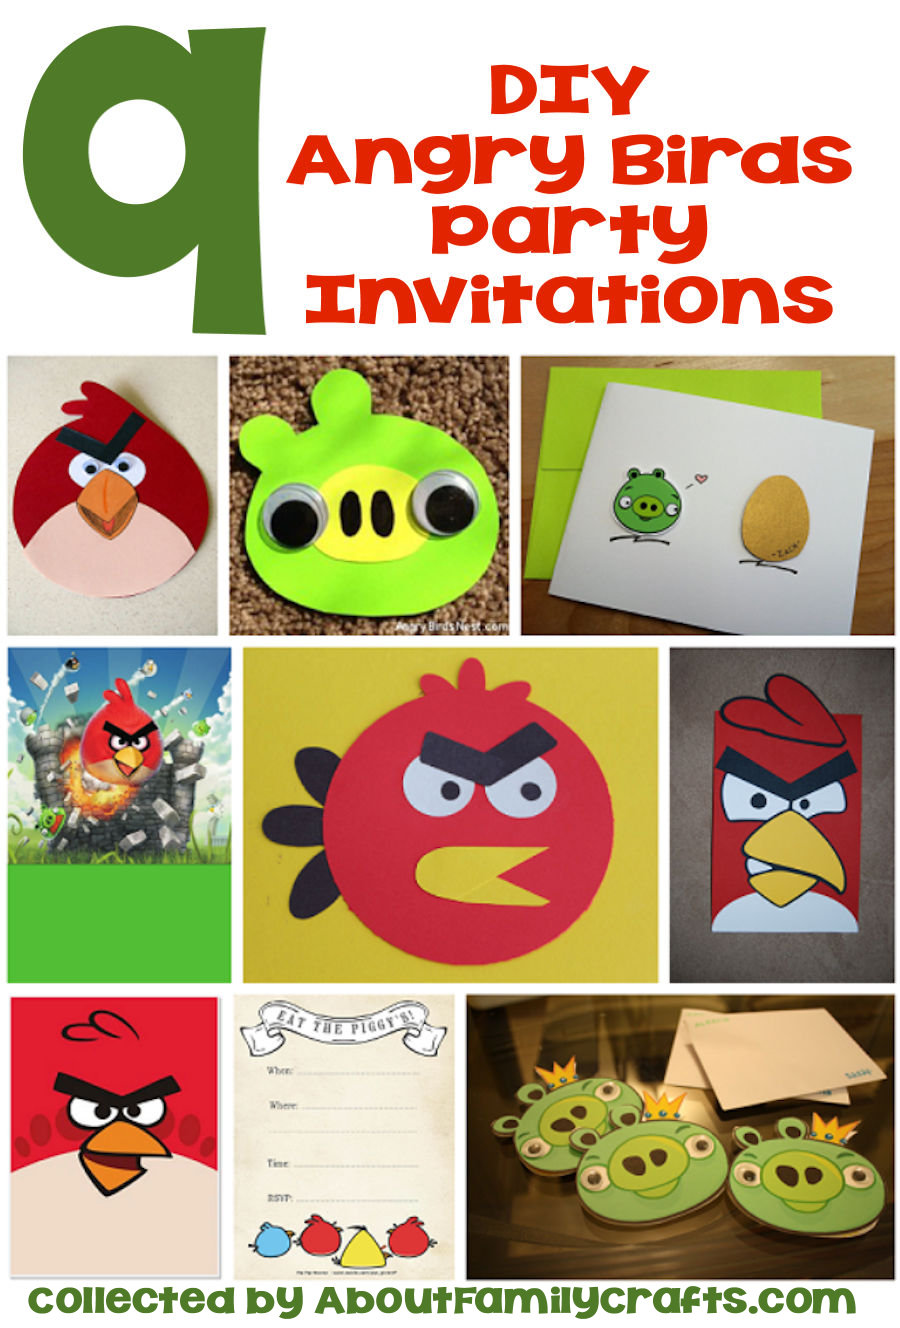 65+ Diy Angry Birds Party Ideas – About Family Crafts